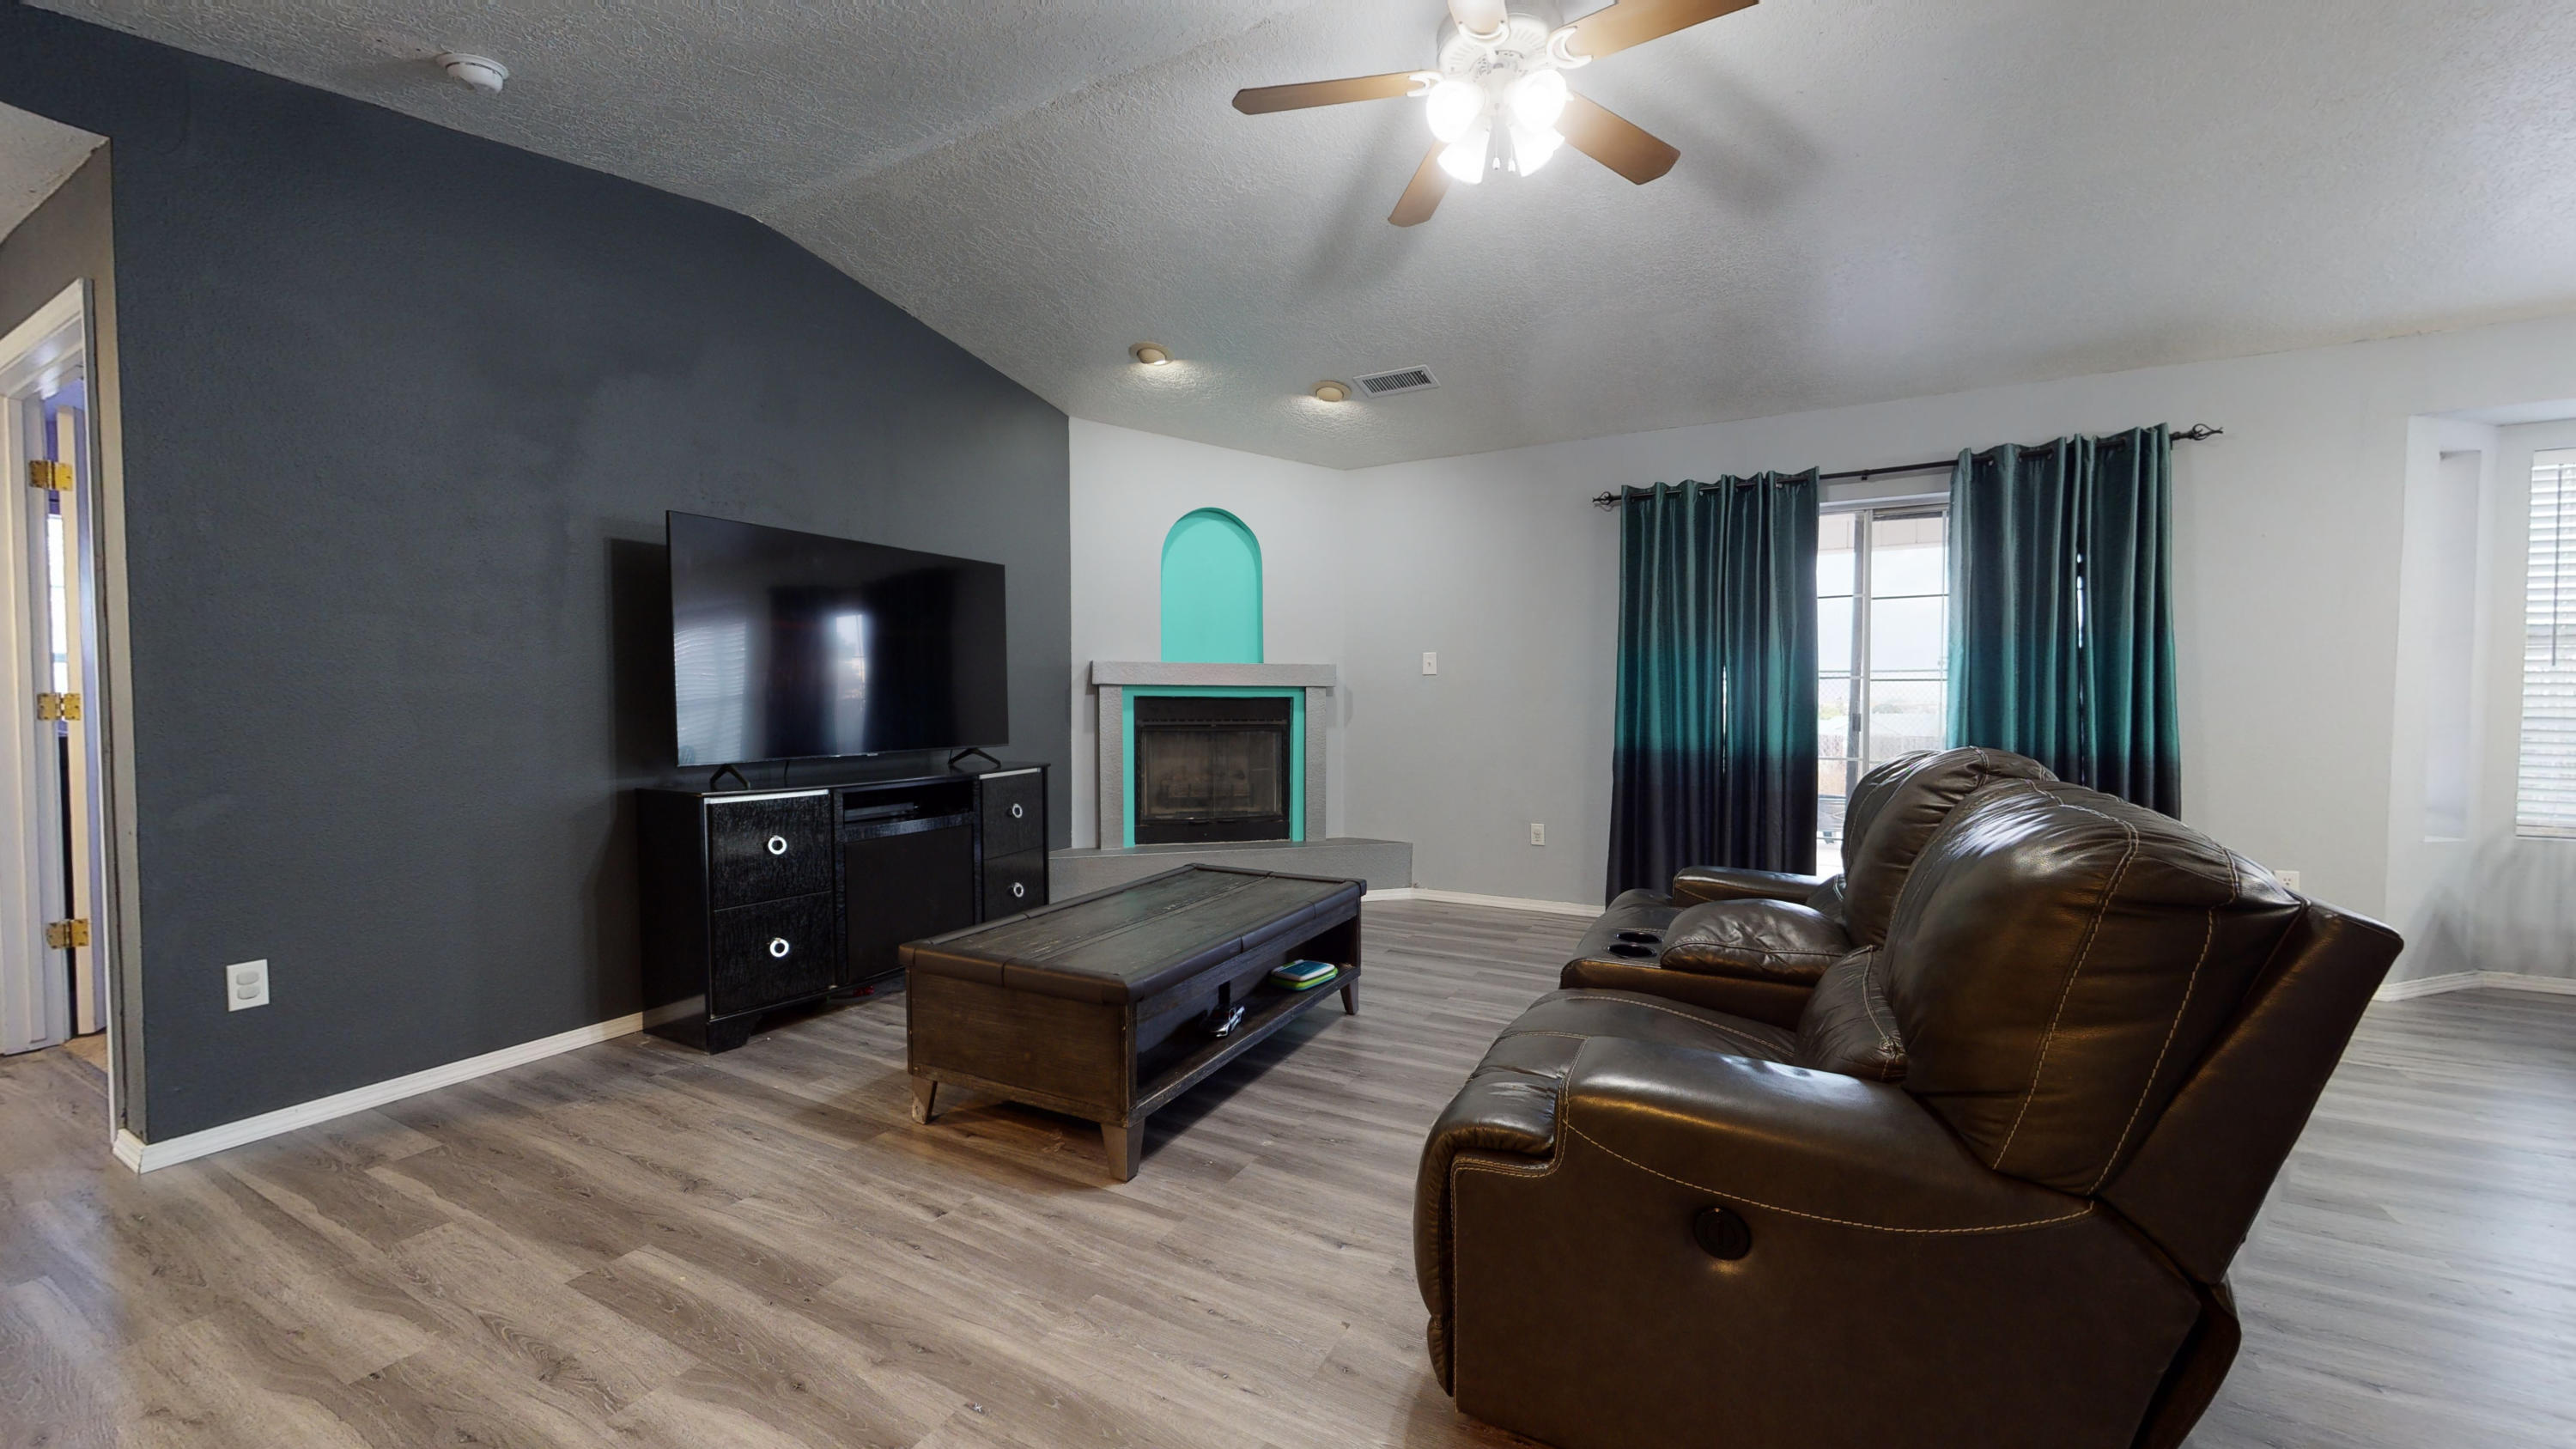 Great Starter home. Corner lot, 3 bedroom, 2 bath home. Custom paint throughout the home. Updated contemporary light fixtures. Updated bathroom, granite countertops. Very large backyard...use your imagination on all the possibilities.